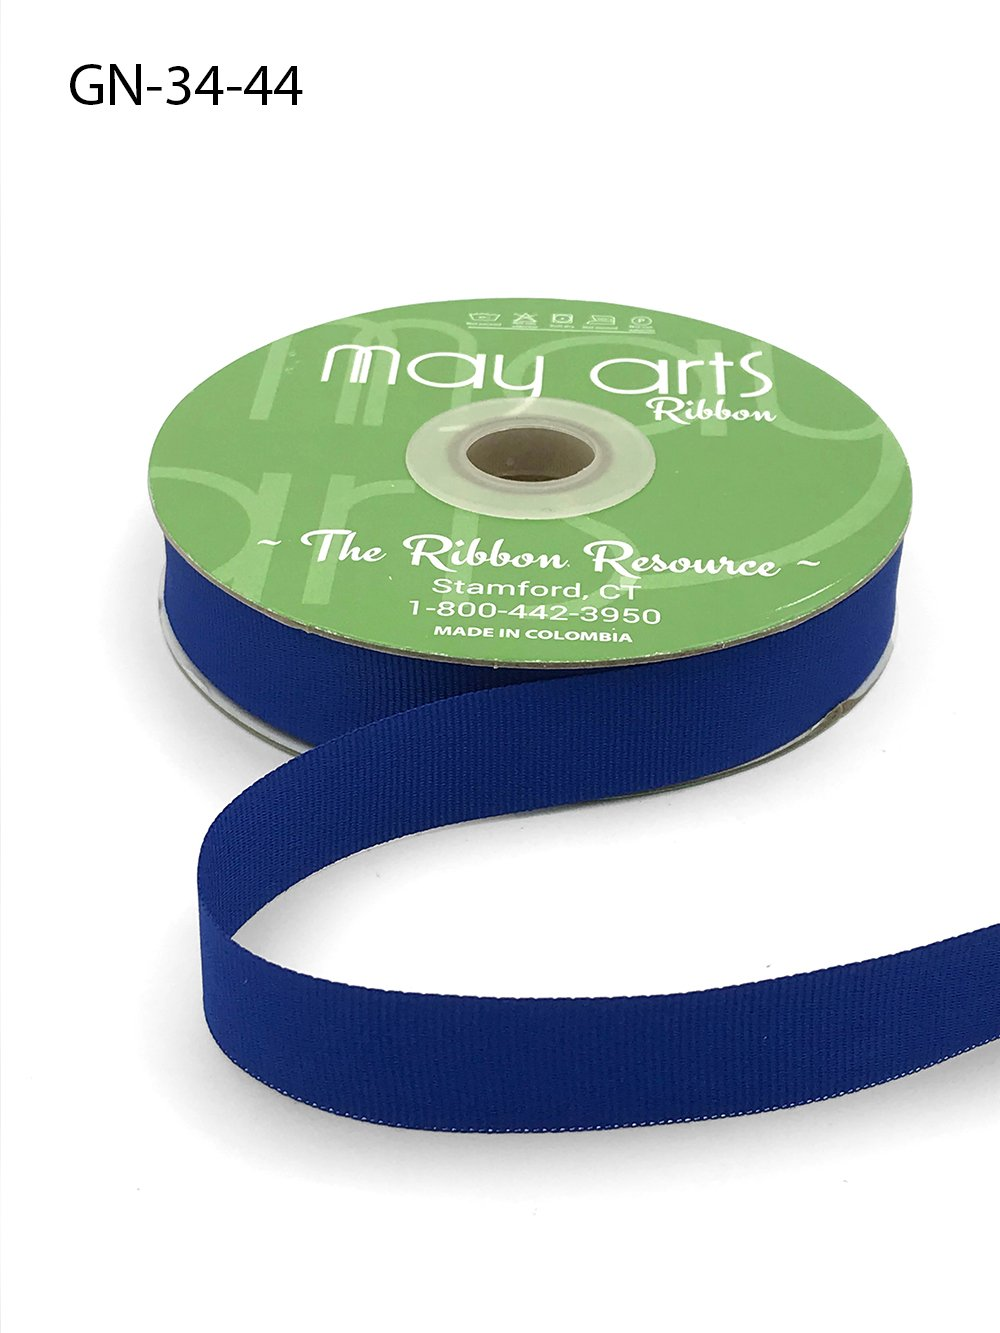 Royal 3/4 Inch Light-Weight Flat Grosgrain Ribbon with Woven Edge